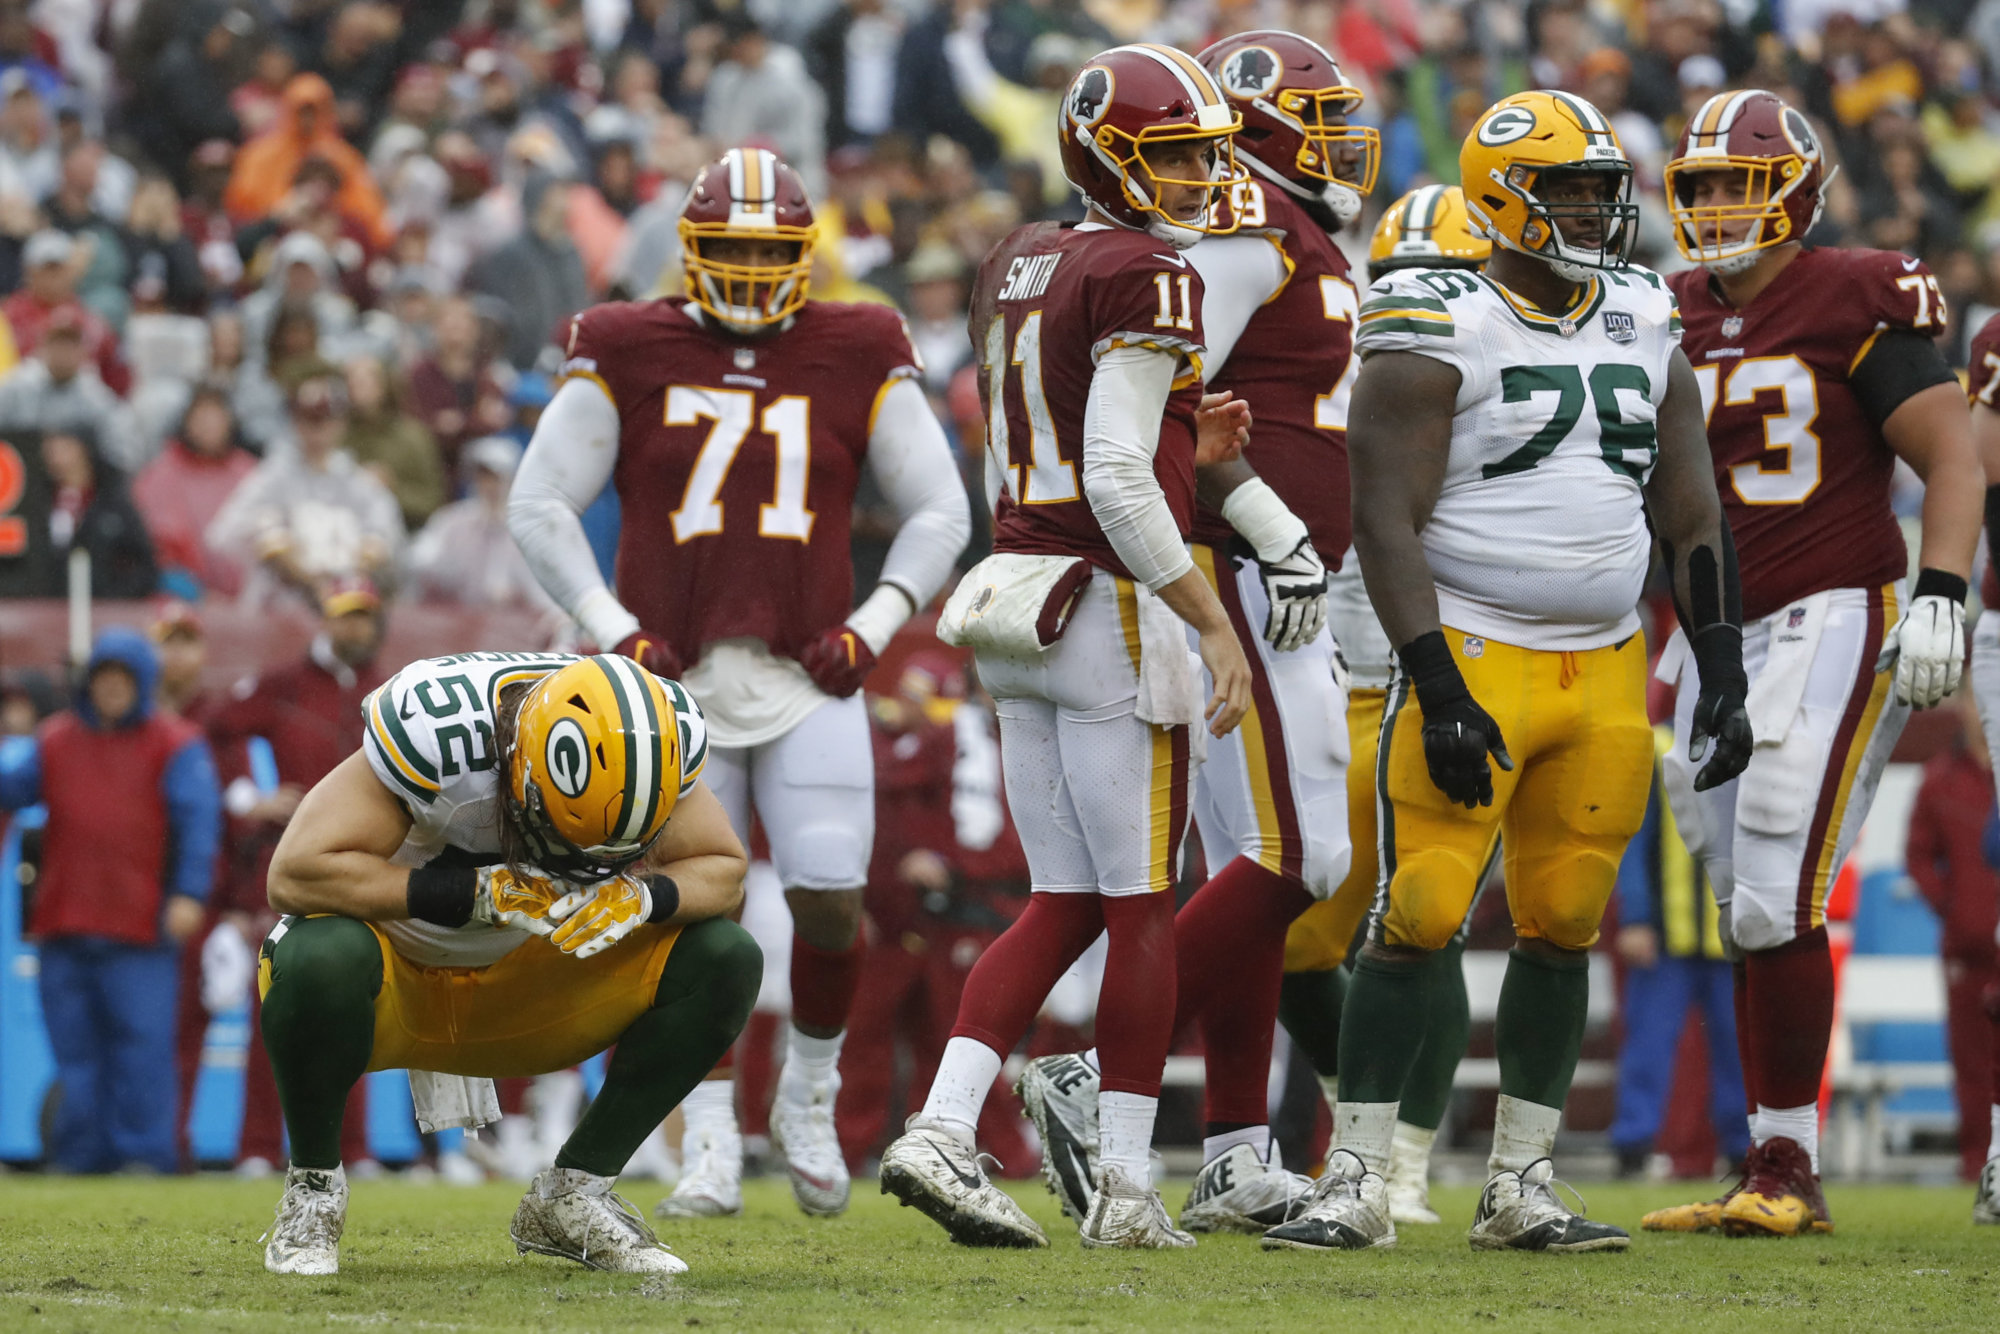 Green Bay Packers linebacker Clay Matthews (52) reacts after his penalty for roughing the passer during the second half of an NFL football game against the Washington Redskins, Sunday, Sept. 23, 2018 in Landover, Md. (AP Photo/Alex Brandon)